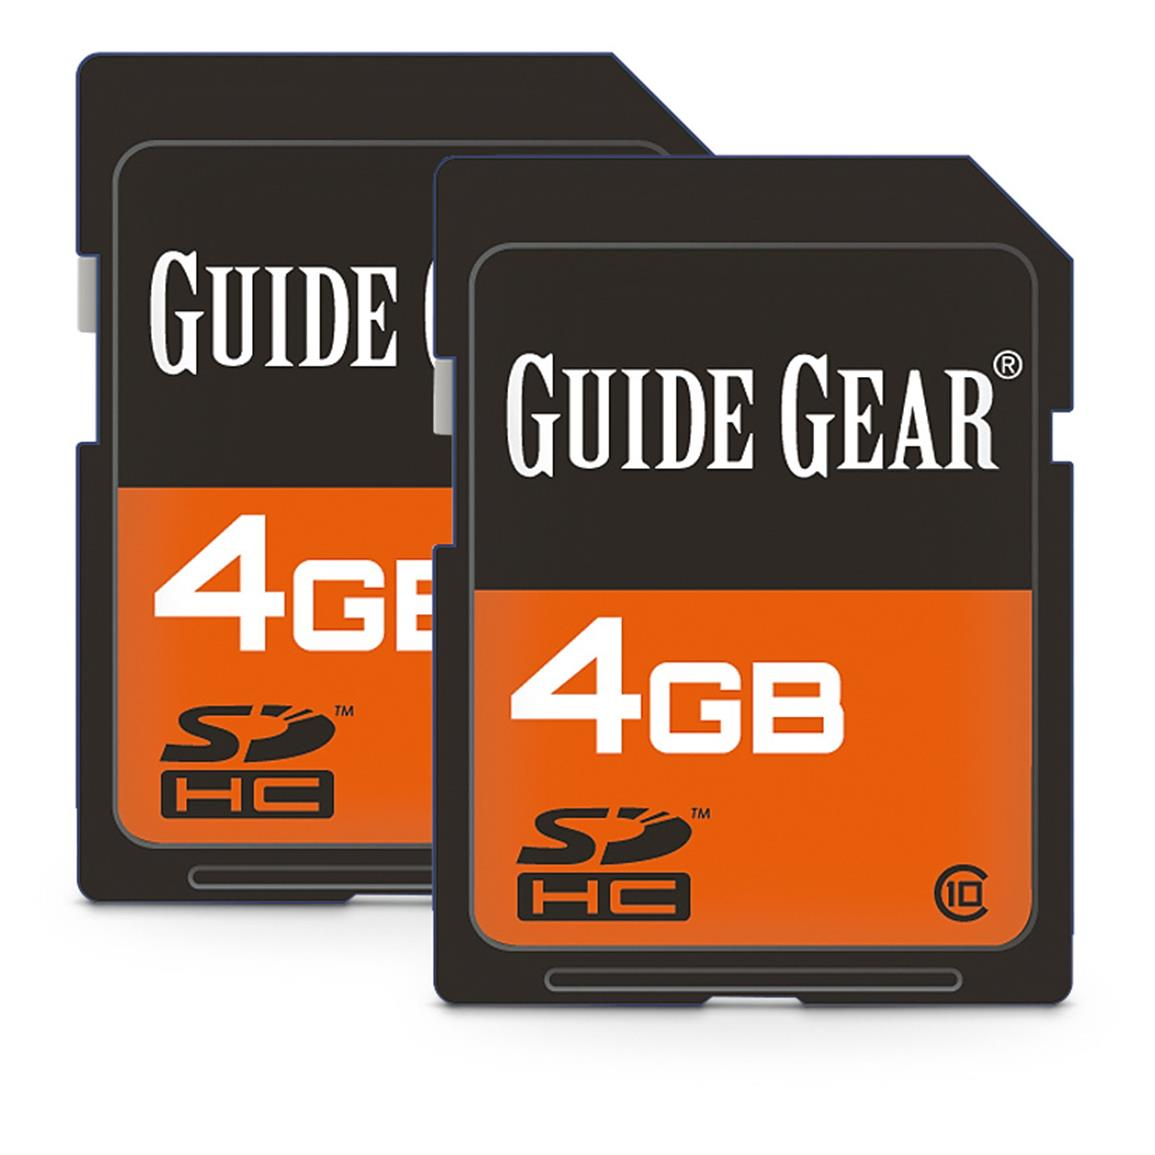 Guide Gear 4GB SD Memory Cards, 2 Pack